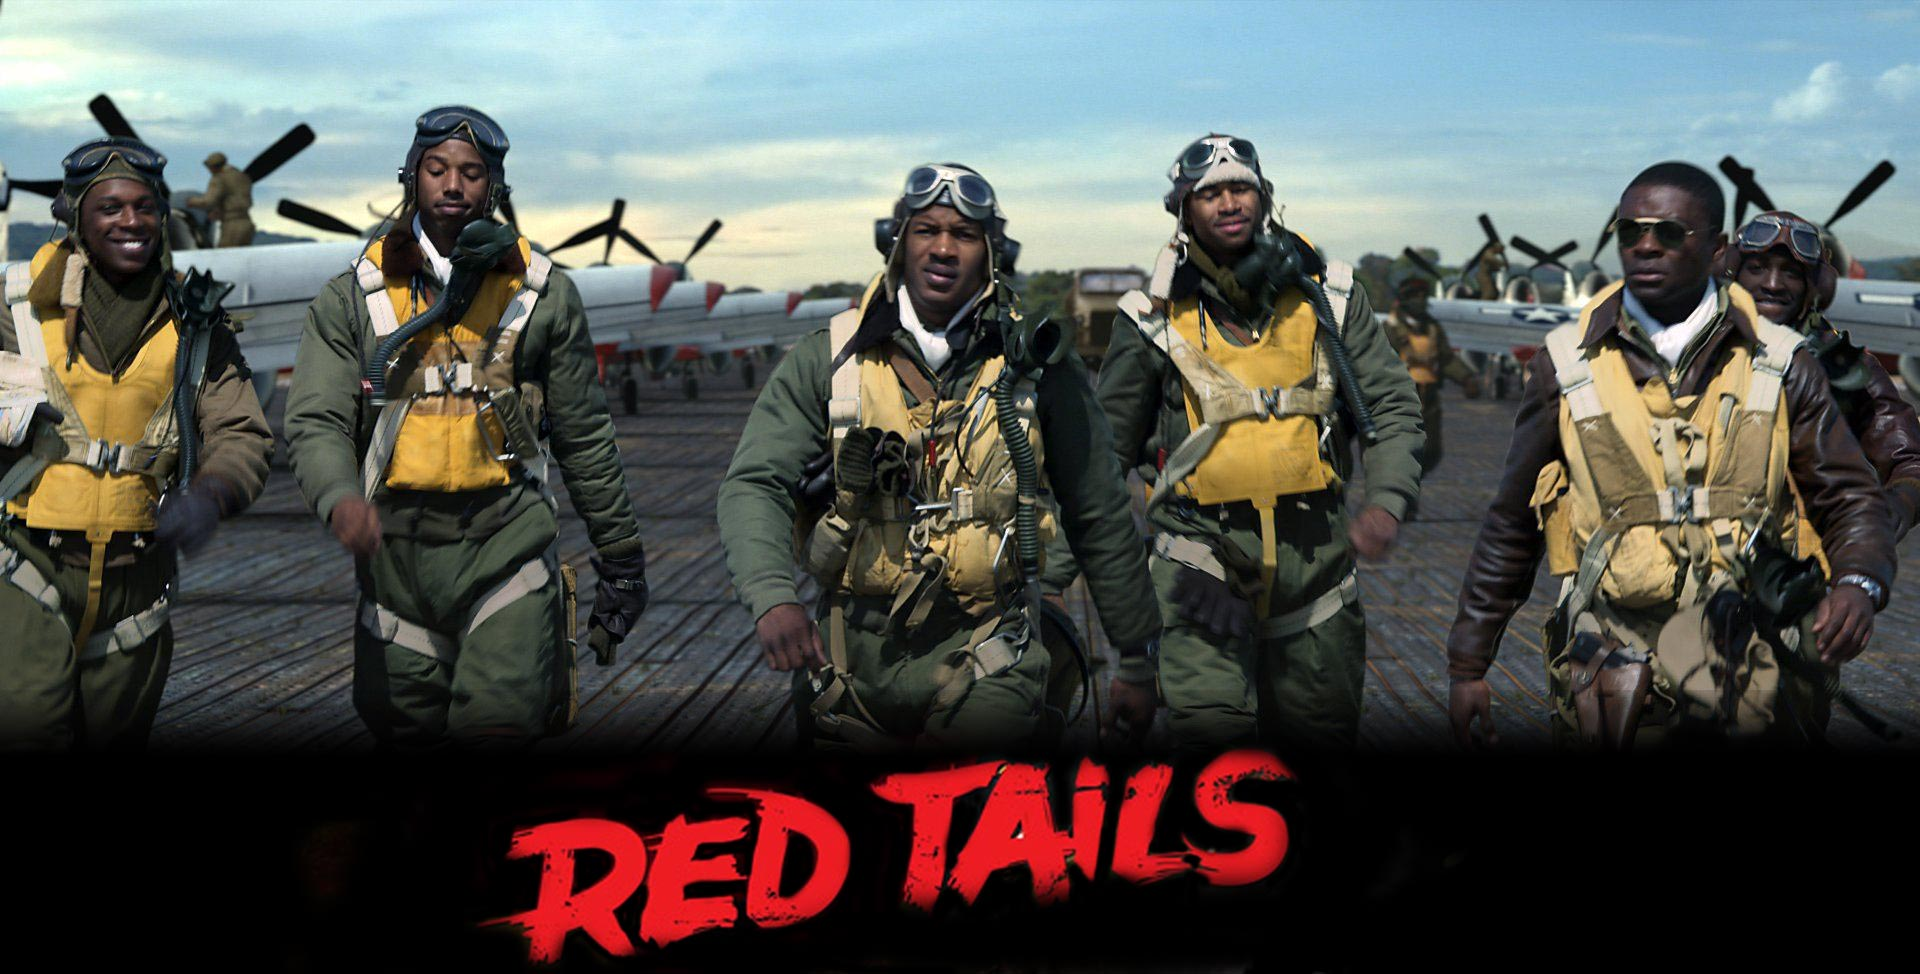 Second RED TAILS Trailer and Official Poster - FilmoFilia